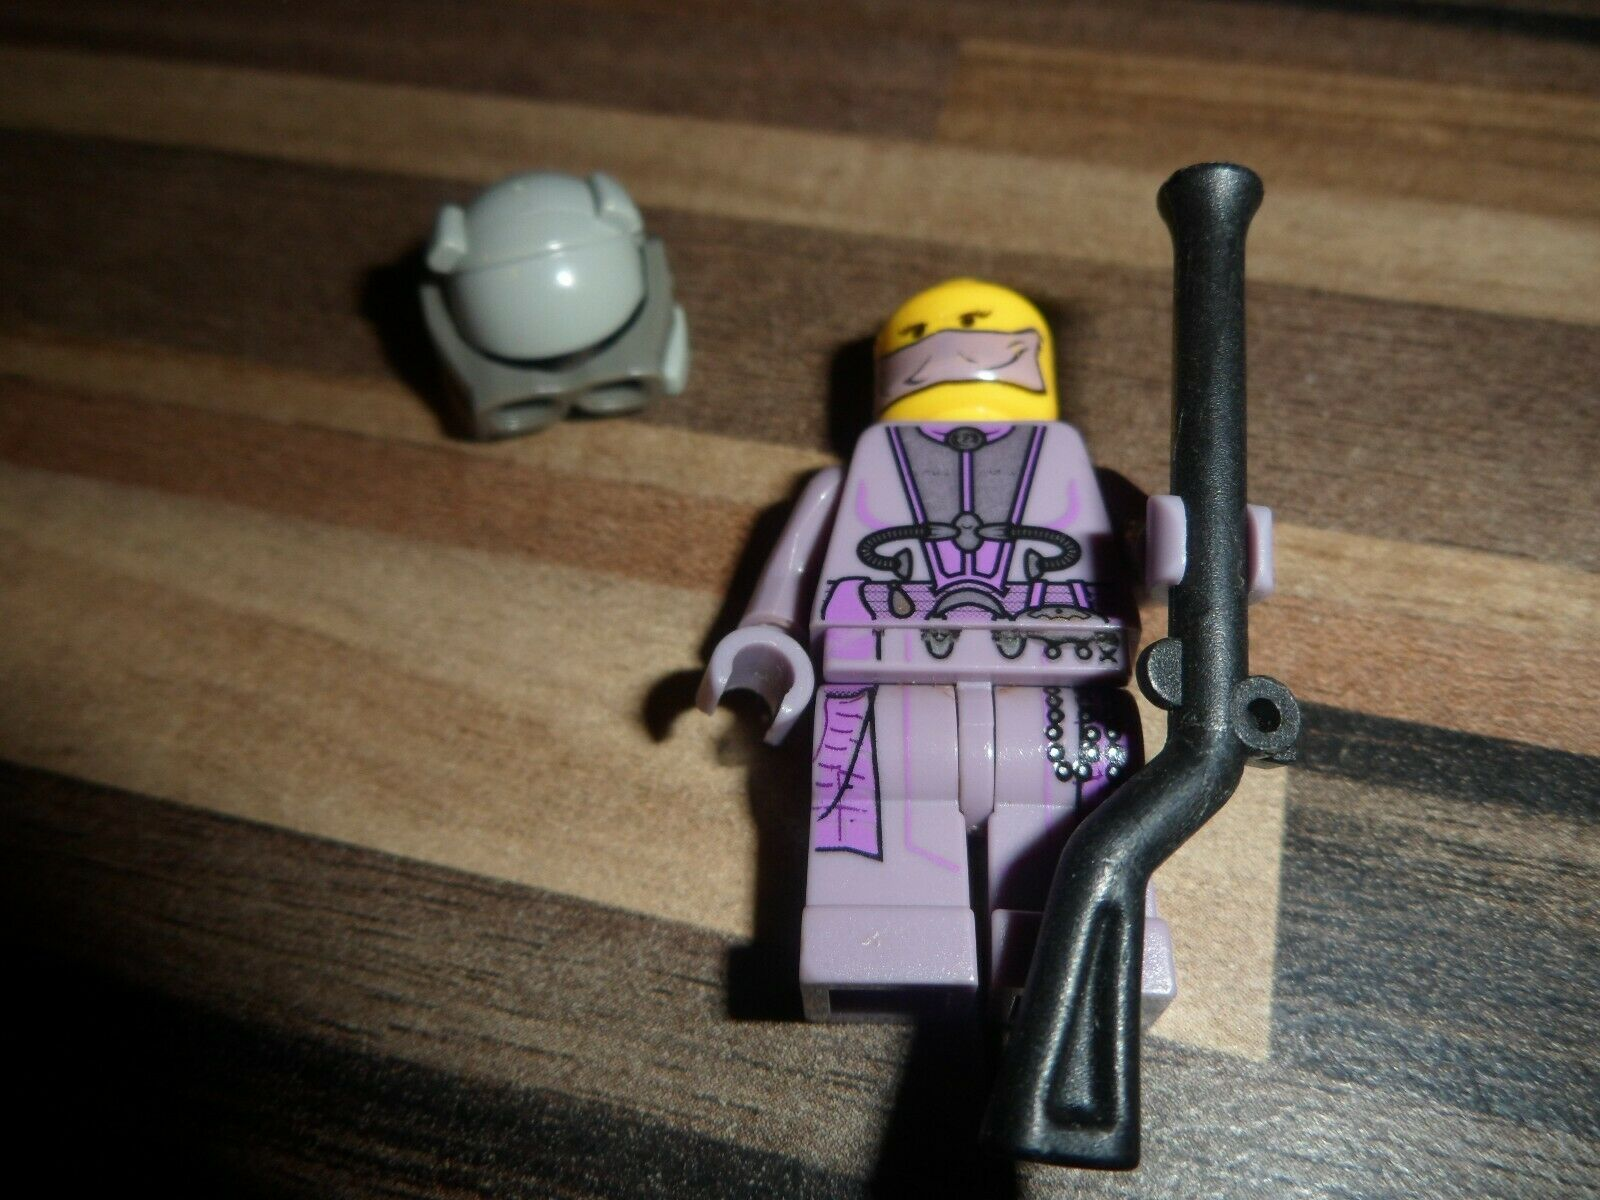 Lego Star Wars Minifigure Zam Wesell Bounty Hunter Pursuit - 7133  GENUINE VGC